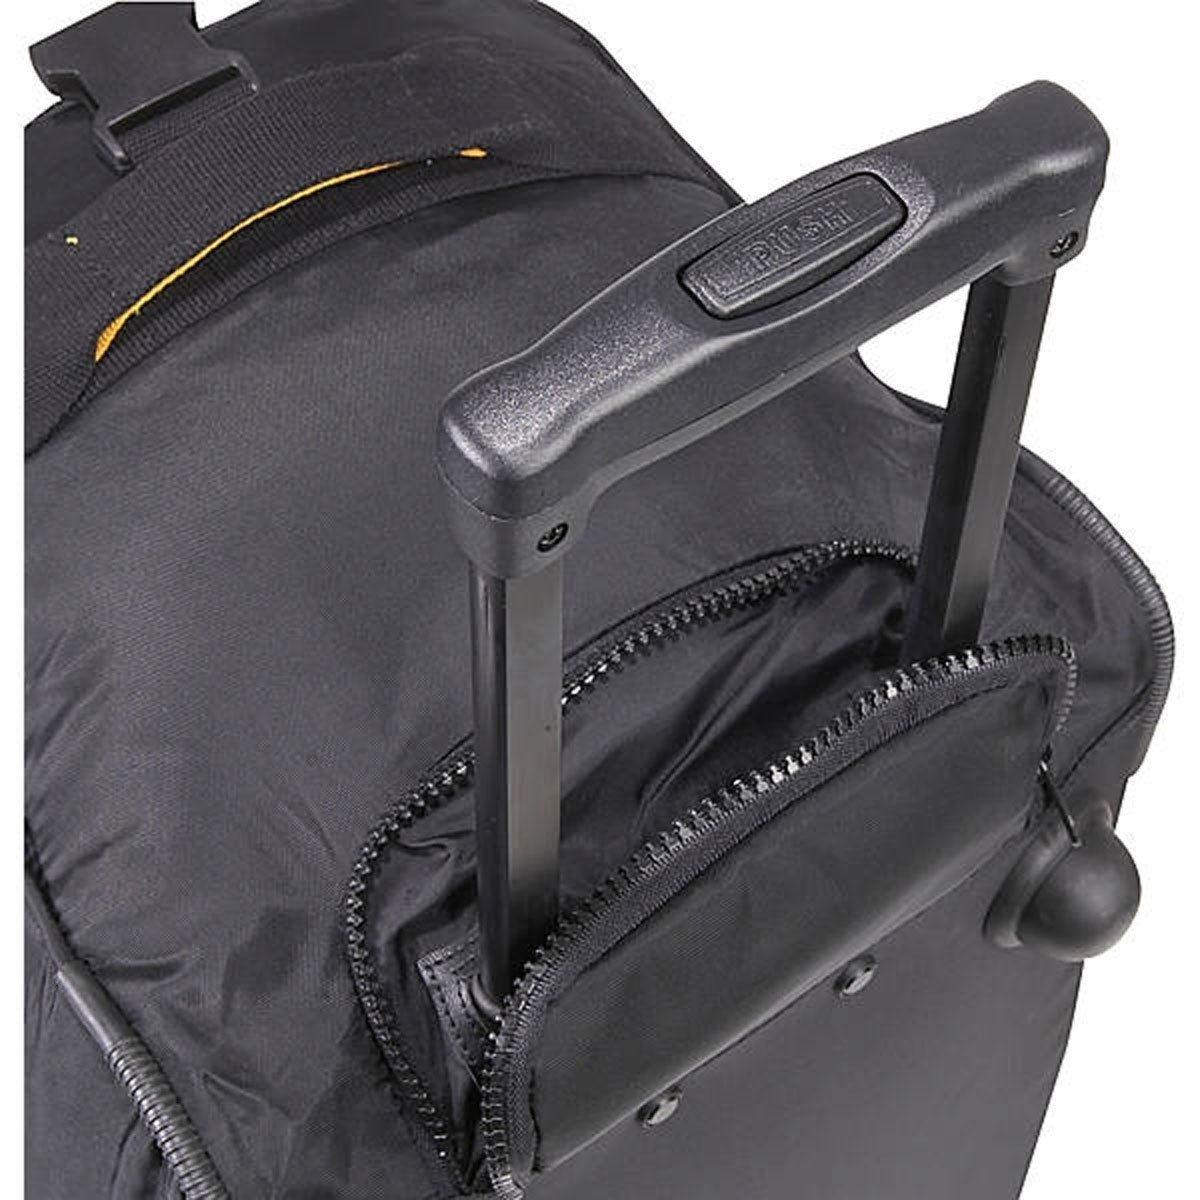 857be2708bff Shop A.Saks Lightweight Expandable 20-inch Carry-On Rolling Duffel - Free  Shipping Today - Overstock - 3439990